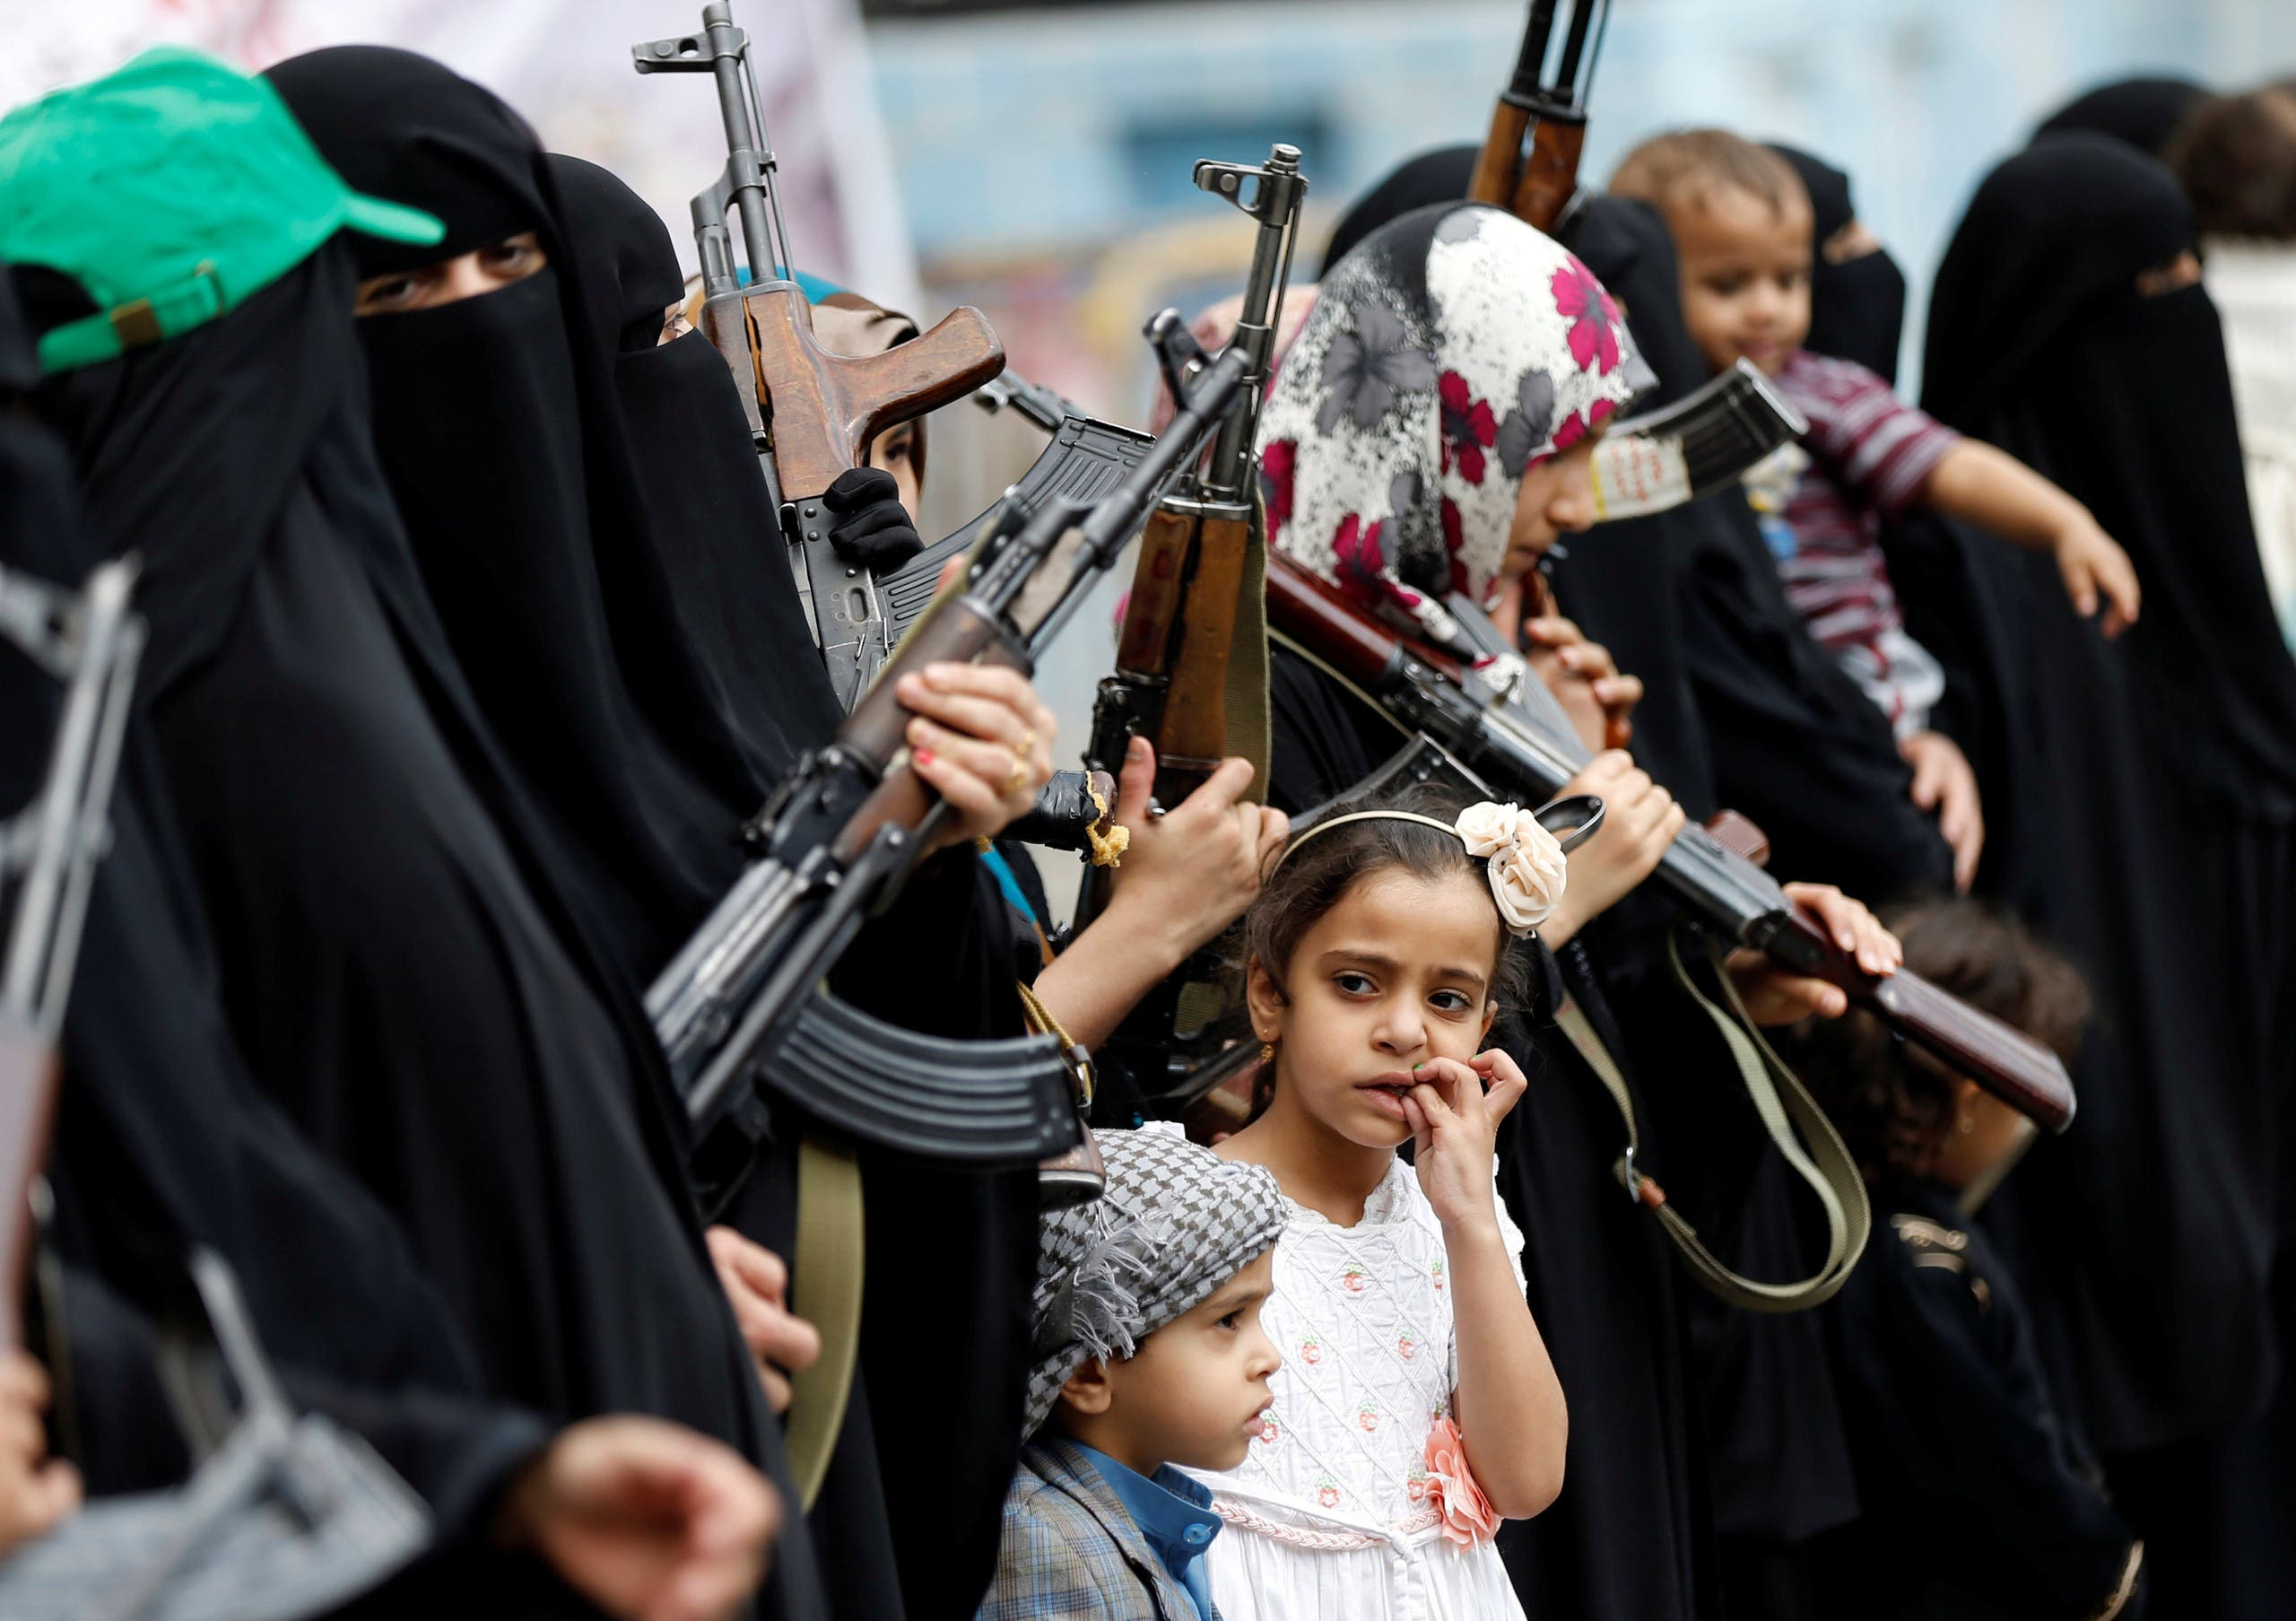 A girl looks at armed women loyal to the Houthi movement as they take part in a parade to show support for the movement in Sanaa, Yemen September 6, 2016. reuters